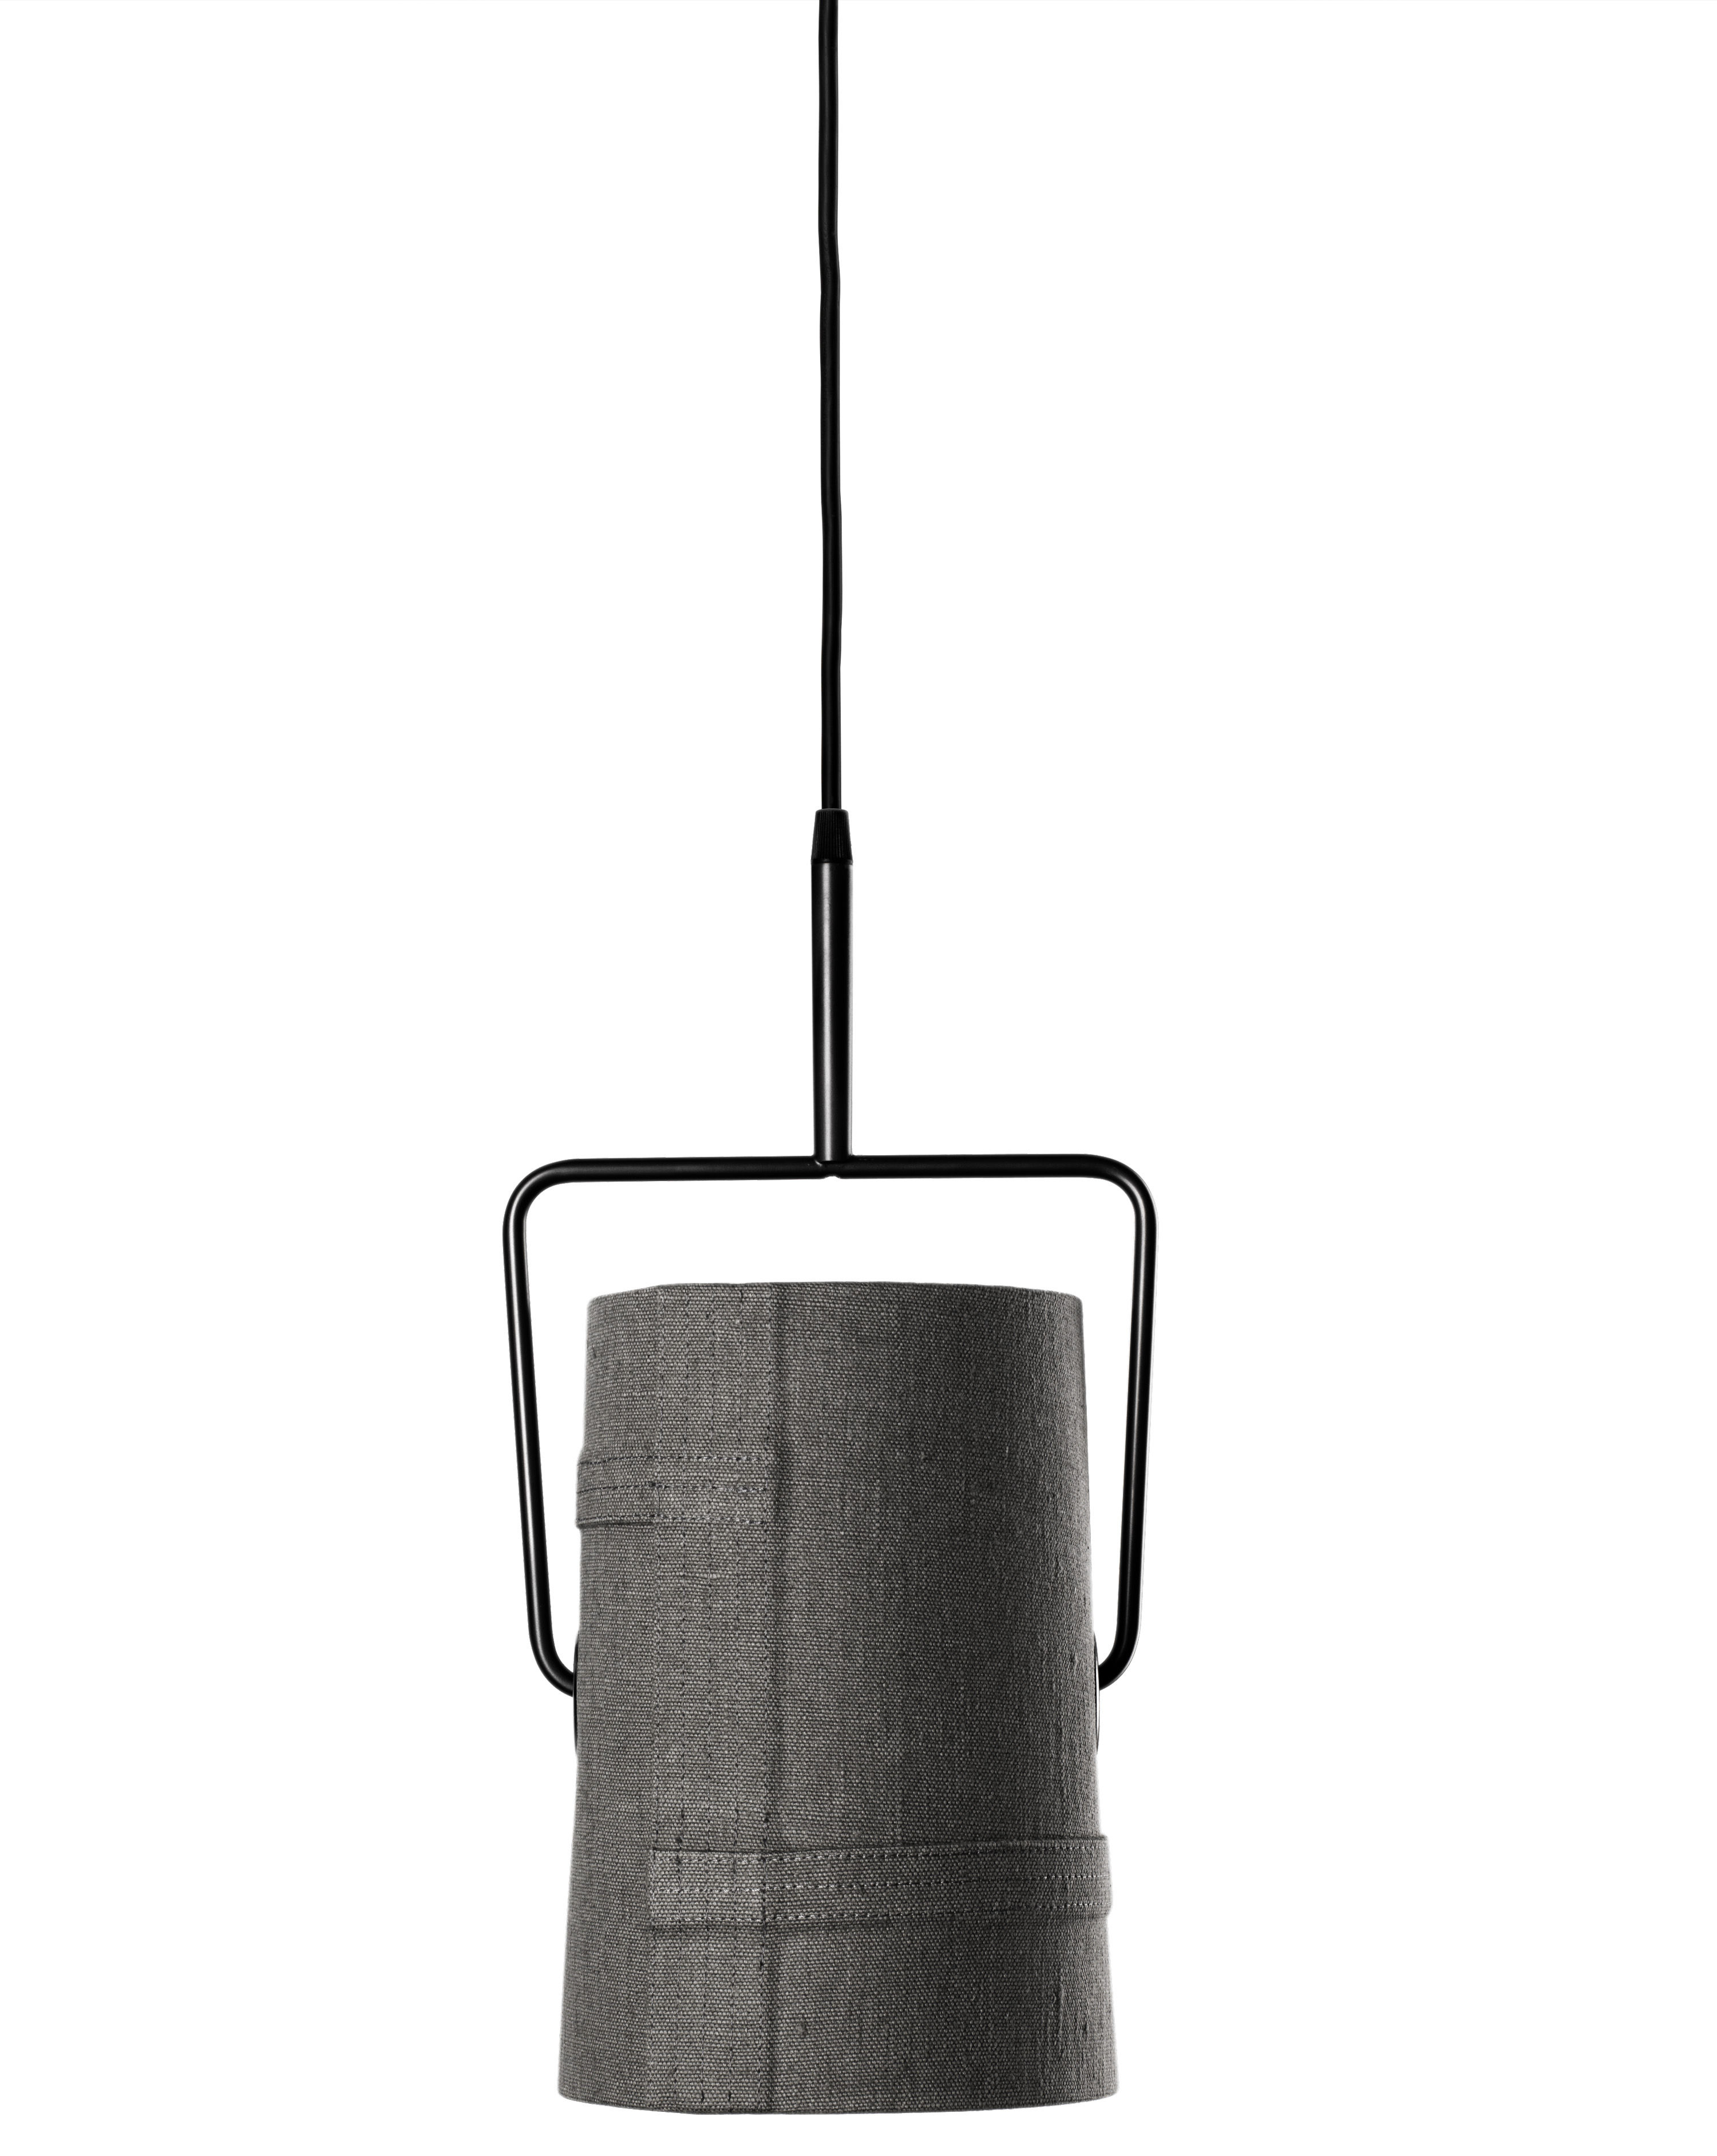 Lighting - Pendant Lighting - Fork piccola Pendant by Diesel with Foscarini - Grey - Ø 22 cm x H 42 cm - Anodized metal, Fabric